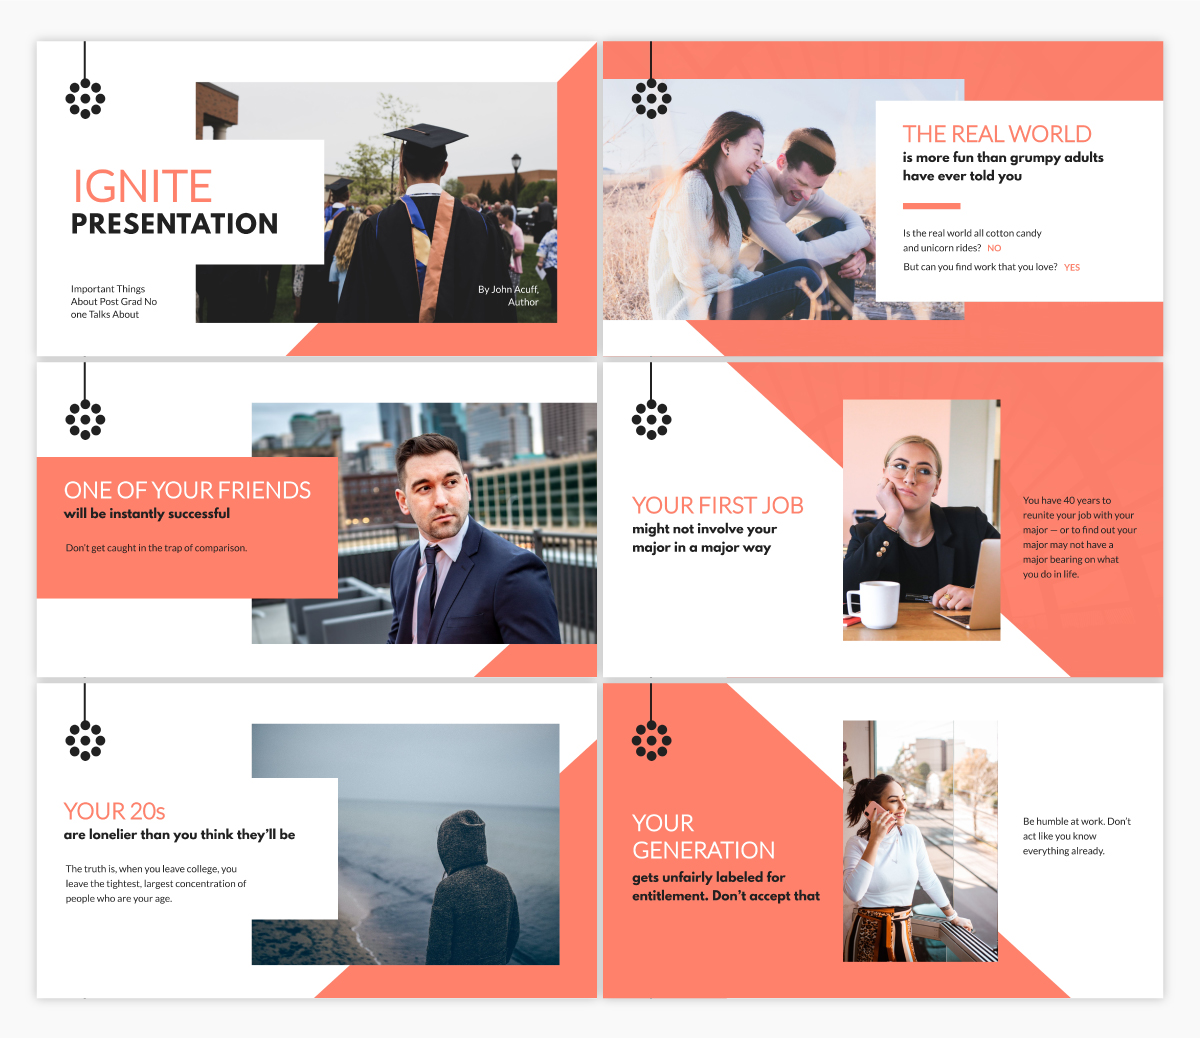 An Ignite presentation template available in Visme.